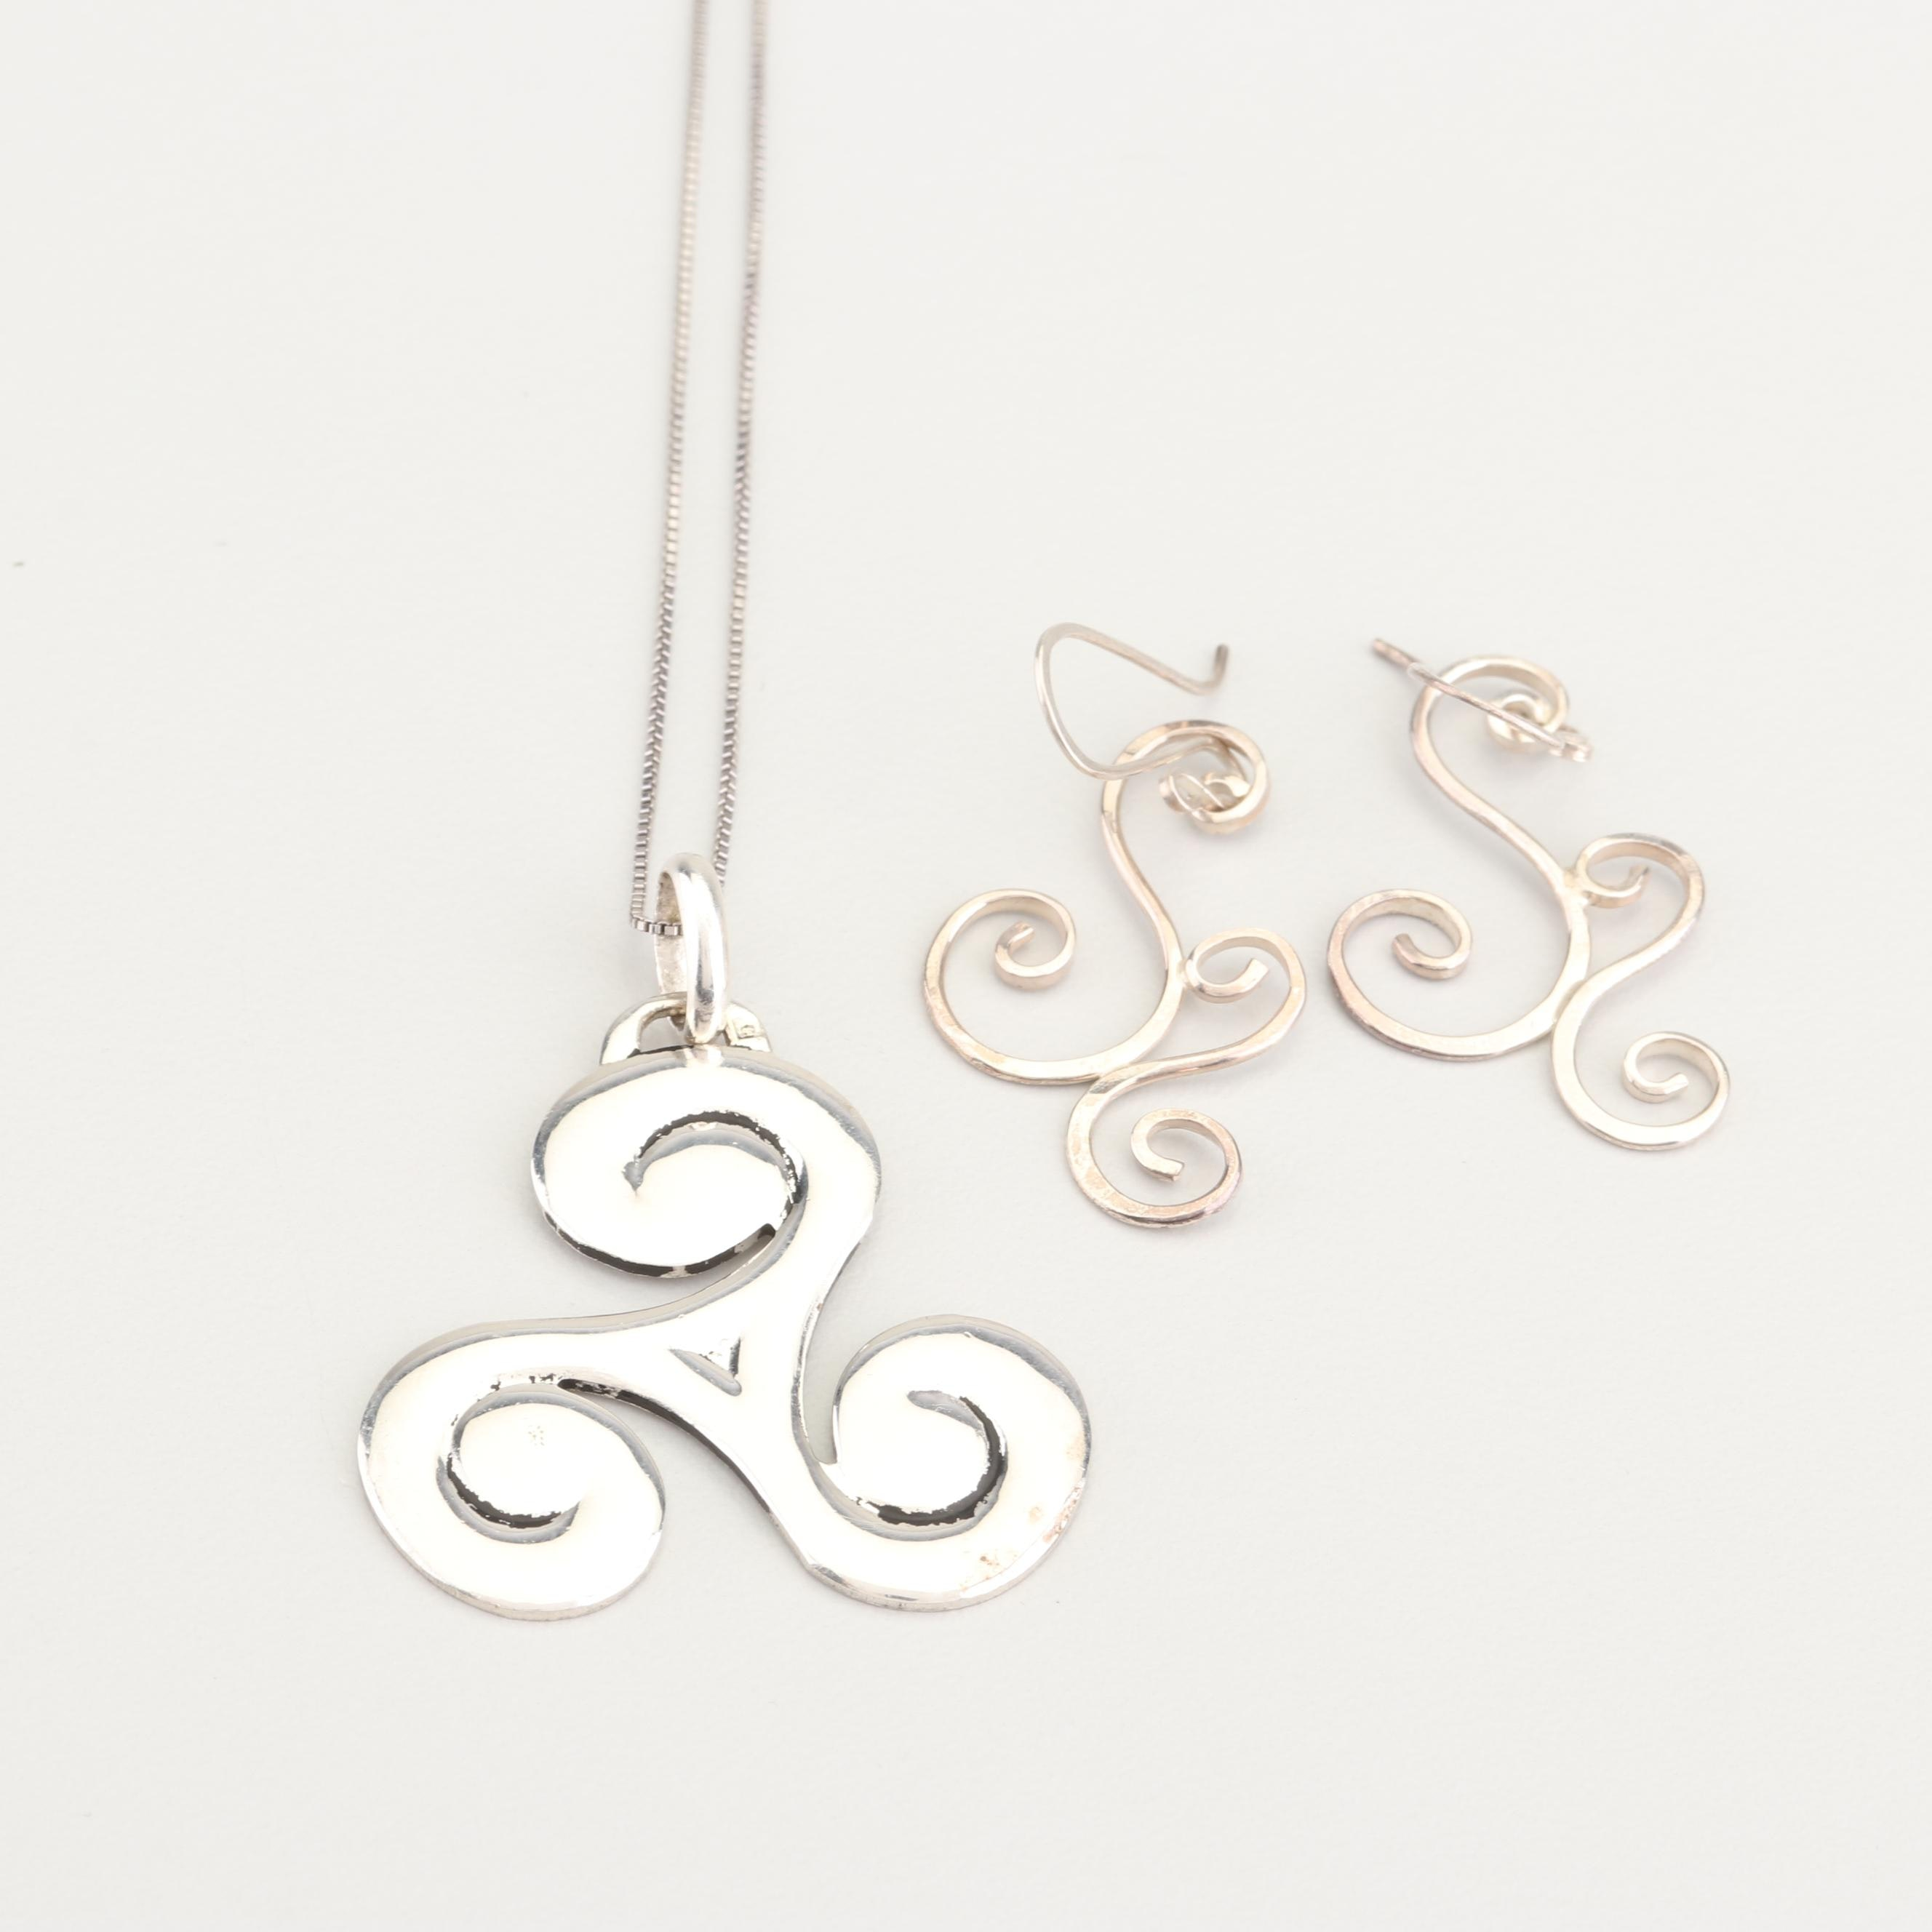 Sterling Silver Earrings and Sterling Silver Chain with Silver Tone Pendant